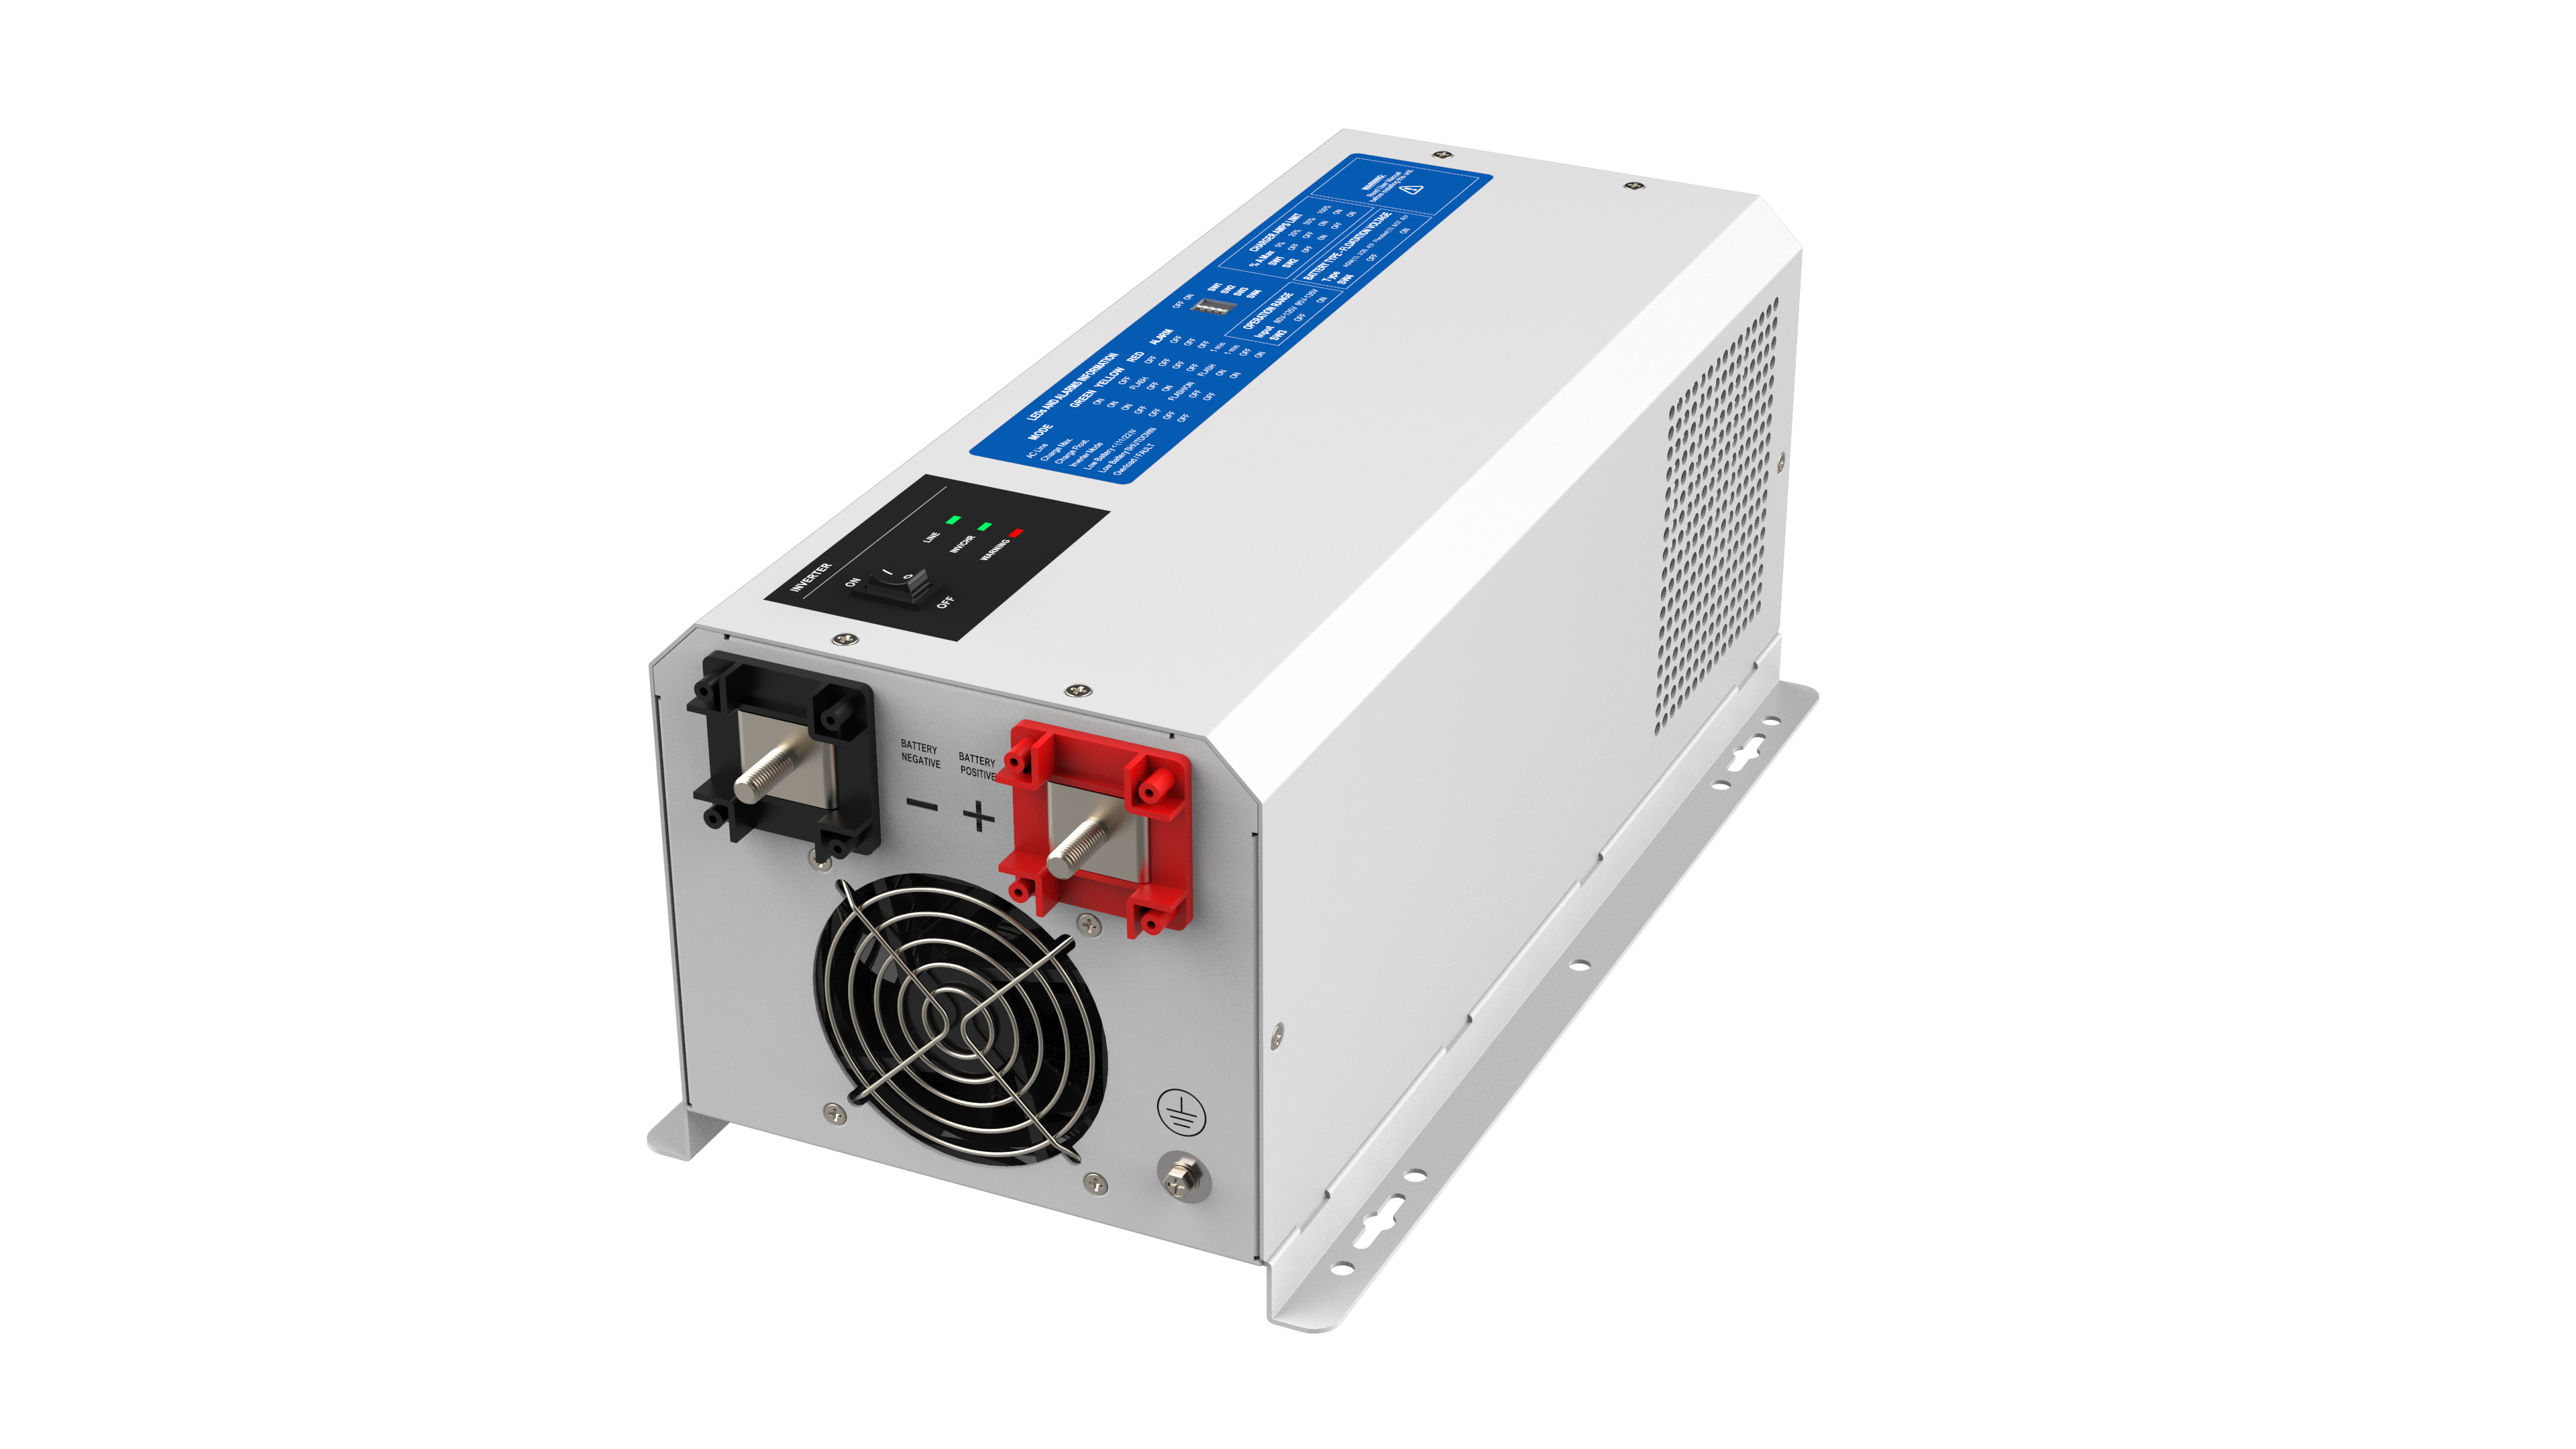 Square wave inverter ECO Series off-grid power frequency inverter